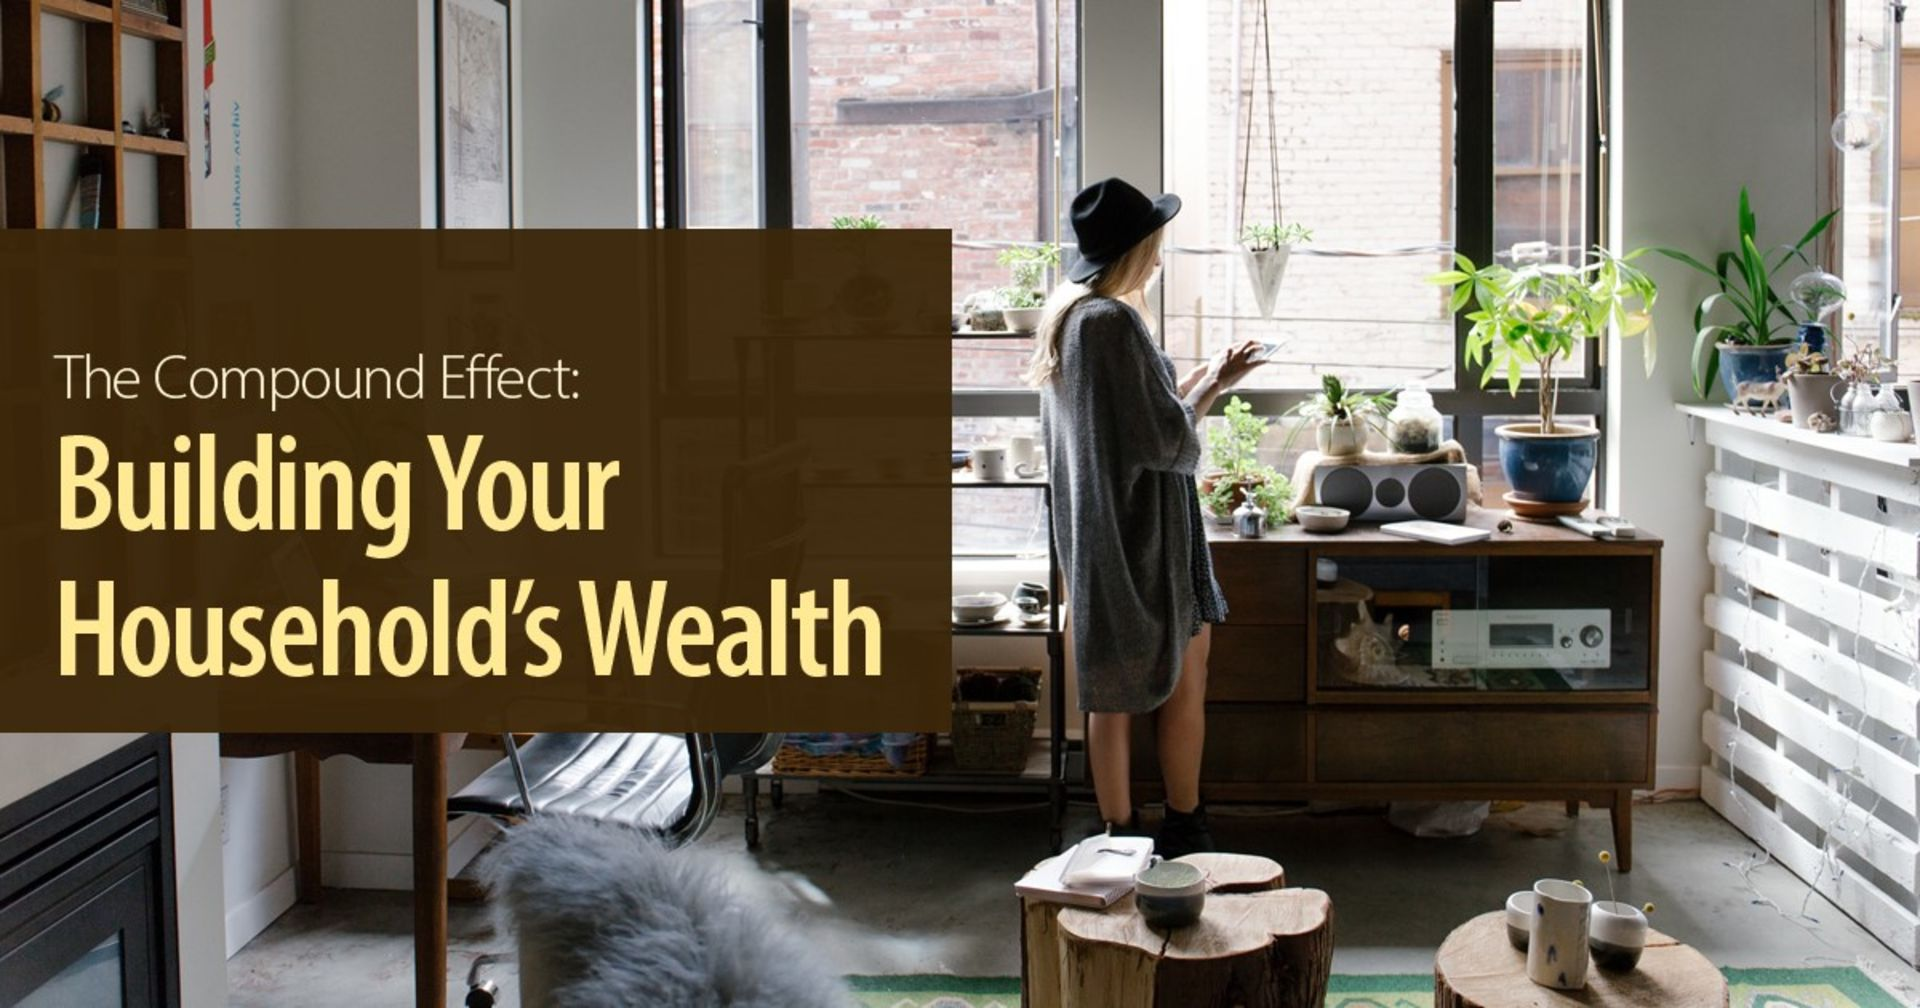 The Compound Effect: Building Your Household's Wealth